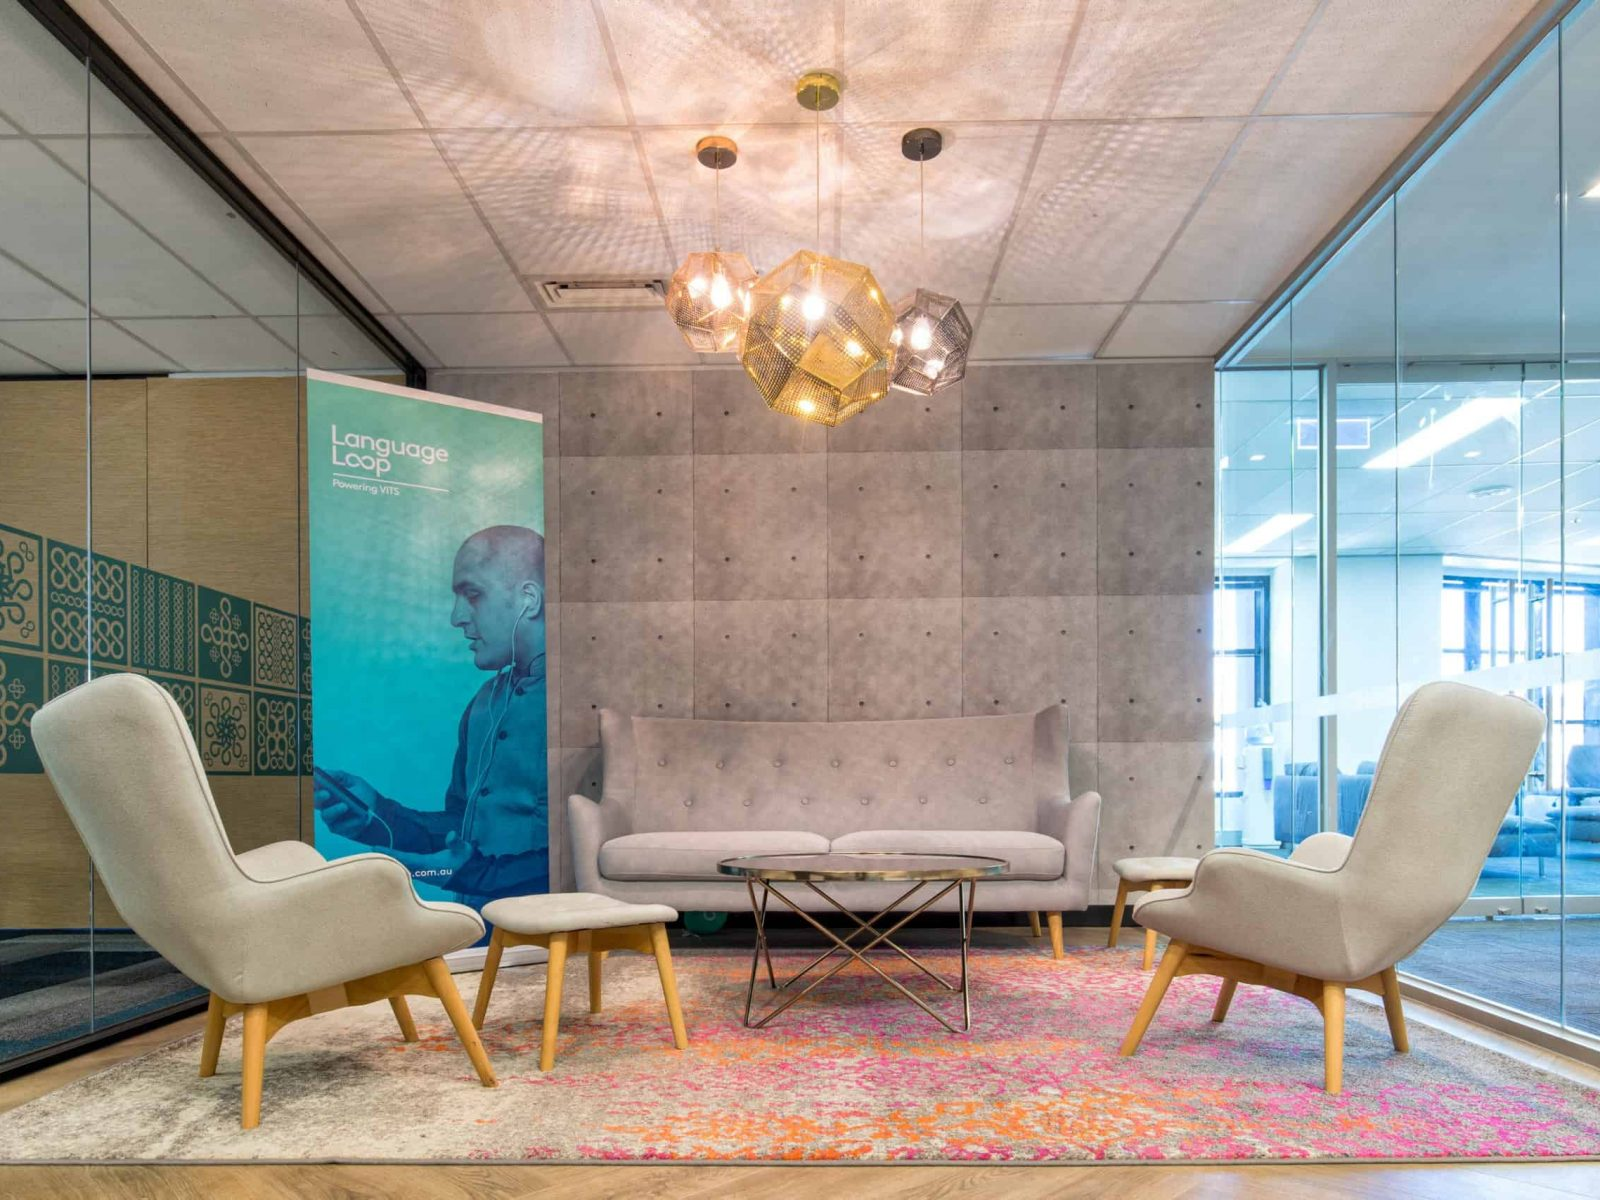 Office Design and Fit Out, Language Loop Melbourne   Contour Interiors